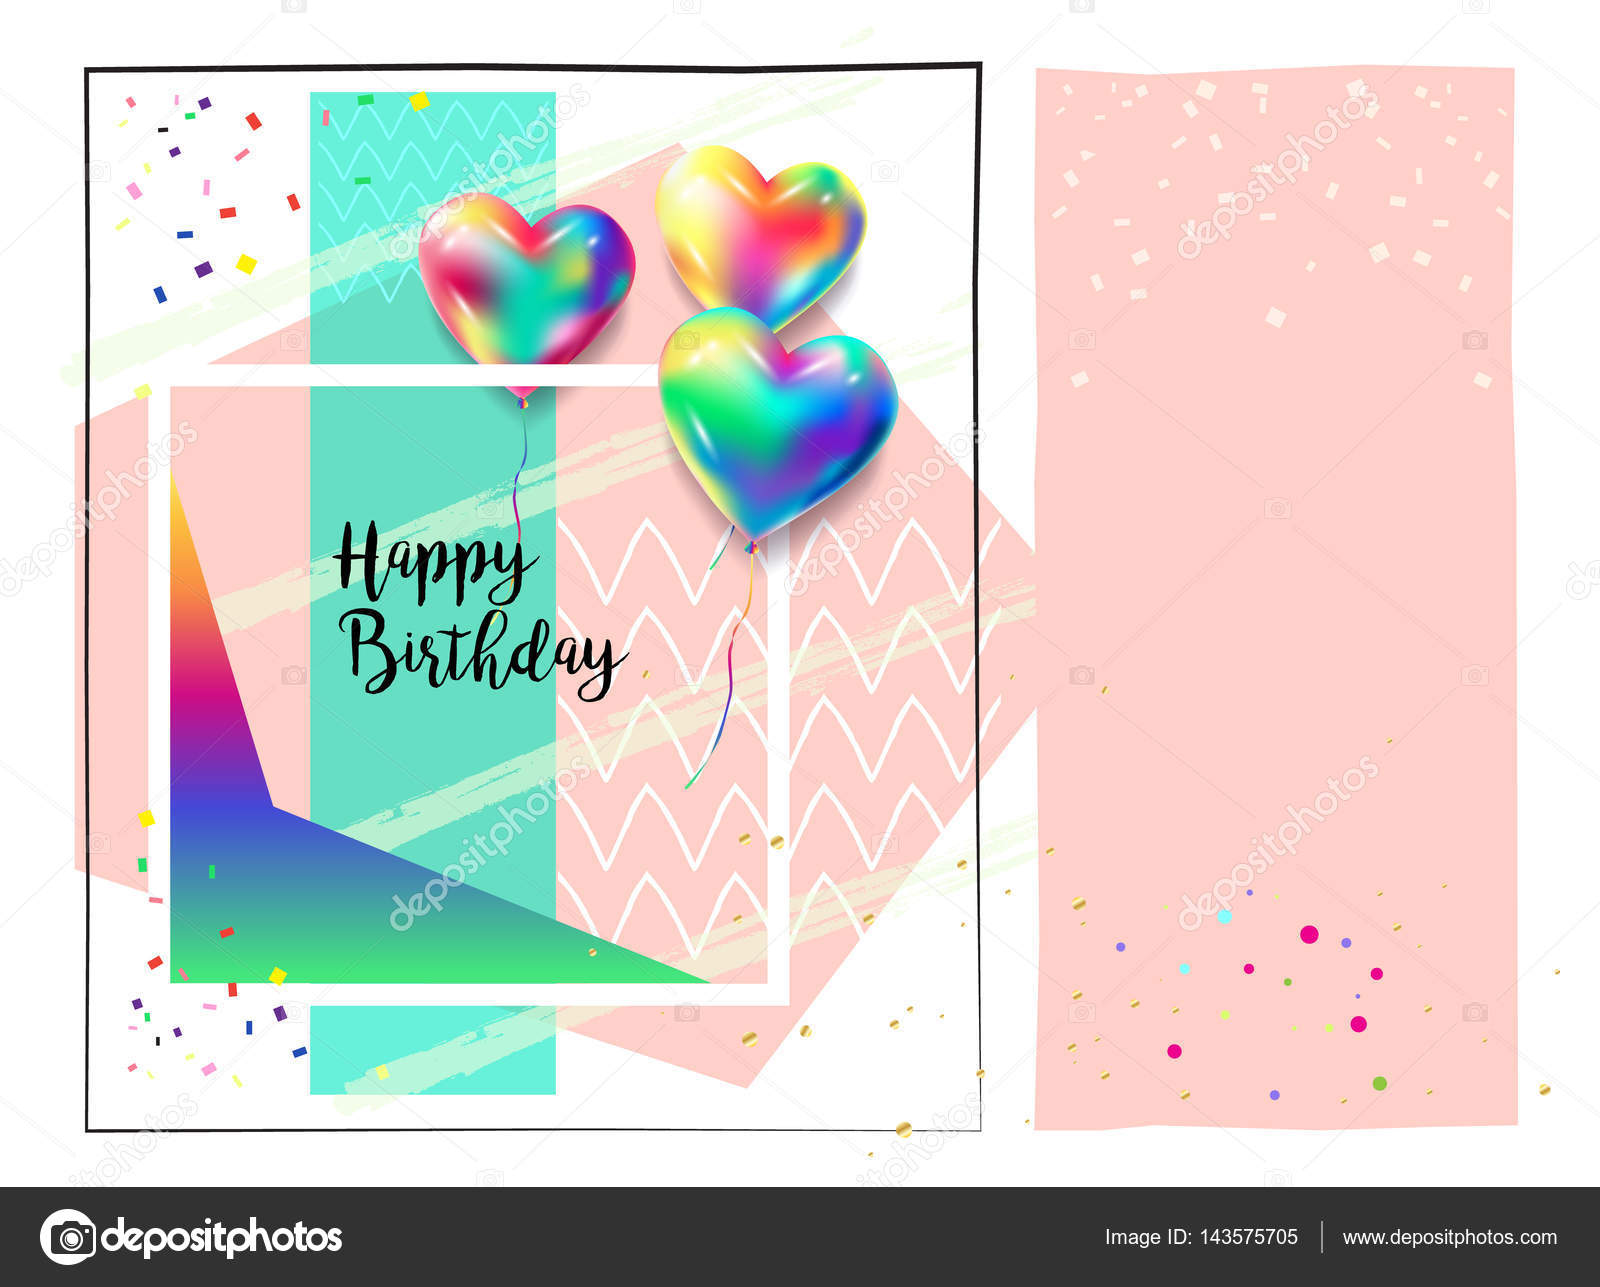 Happy Birthday Greeting Card With Carnival Music Festival Masquerade Design Elements Heart Balloons